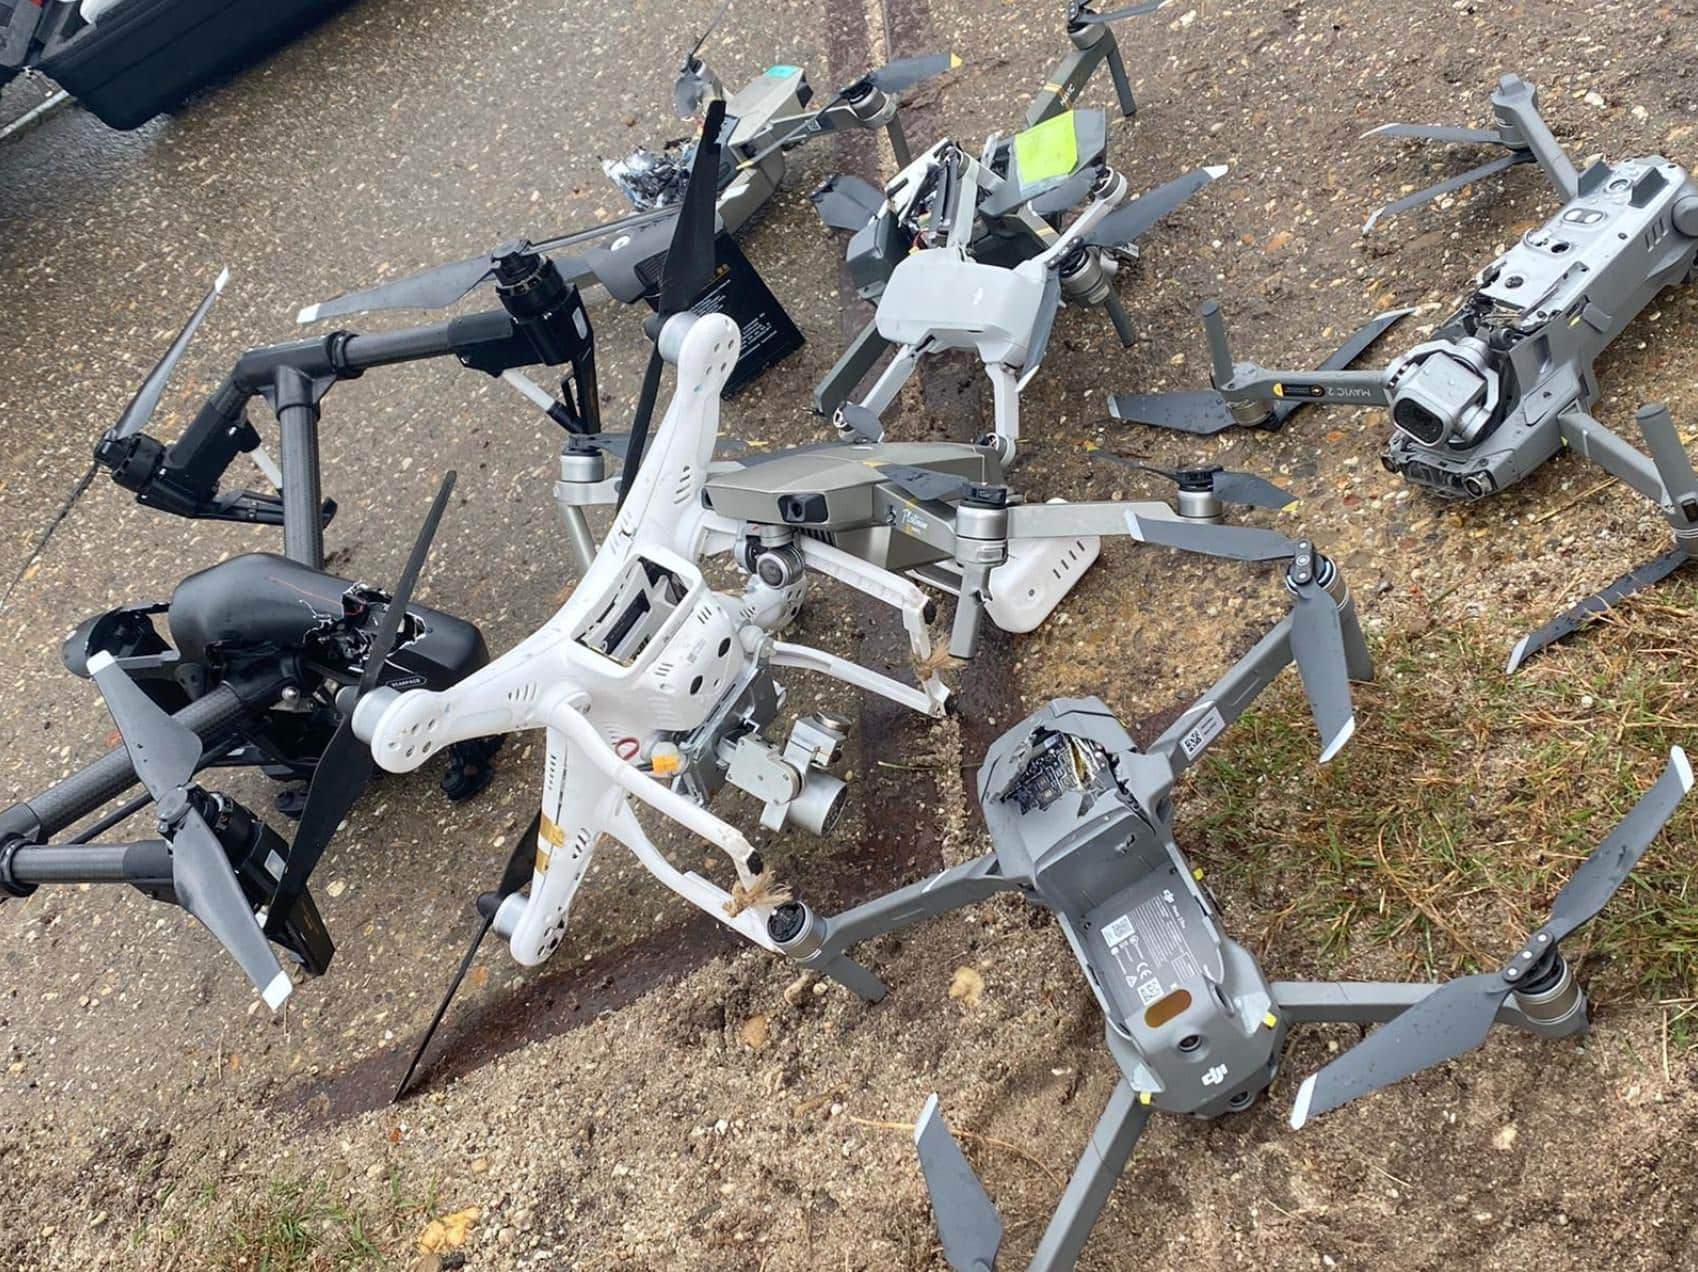 Dutch army shoots DJI drones from the skies